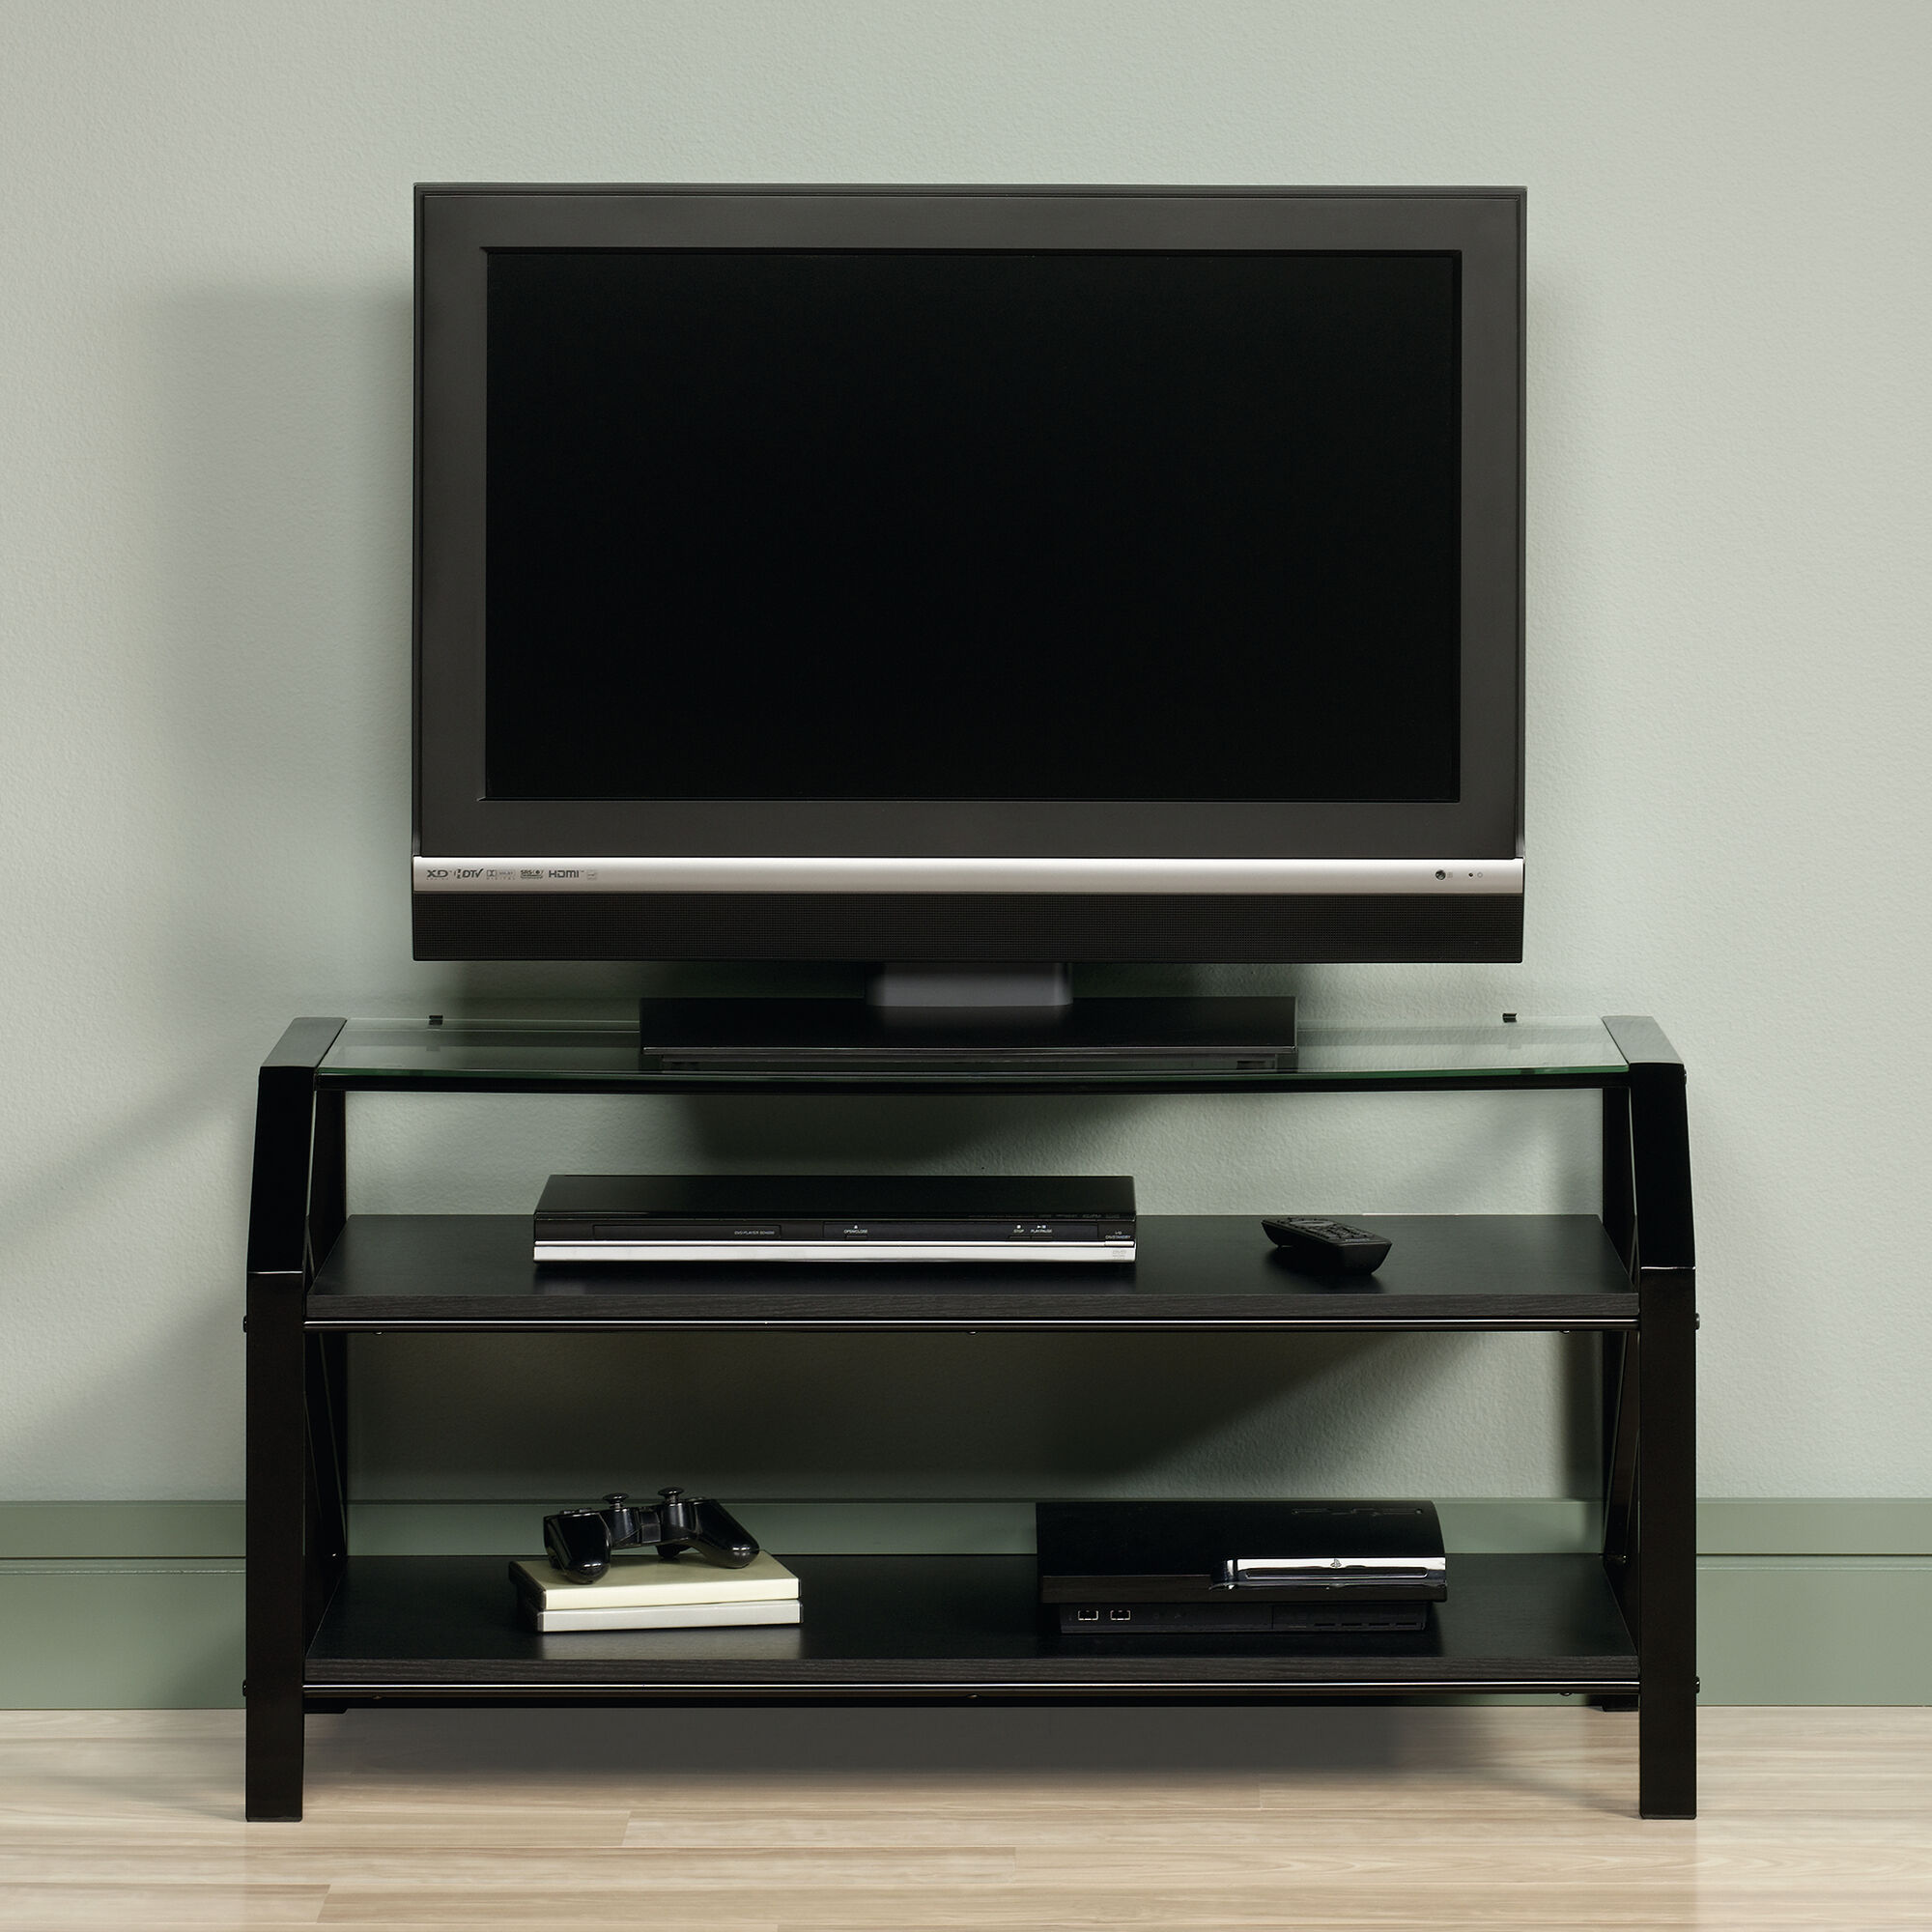 Steel Frame Casual Panel Tv Stand In Black Mathis Brothers Furniture